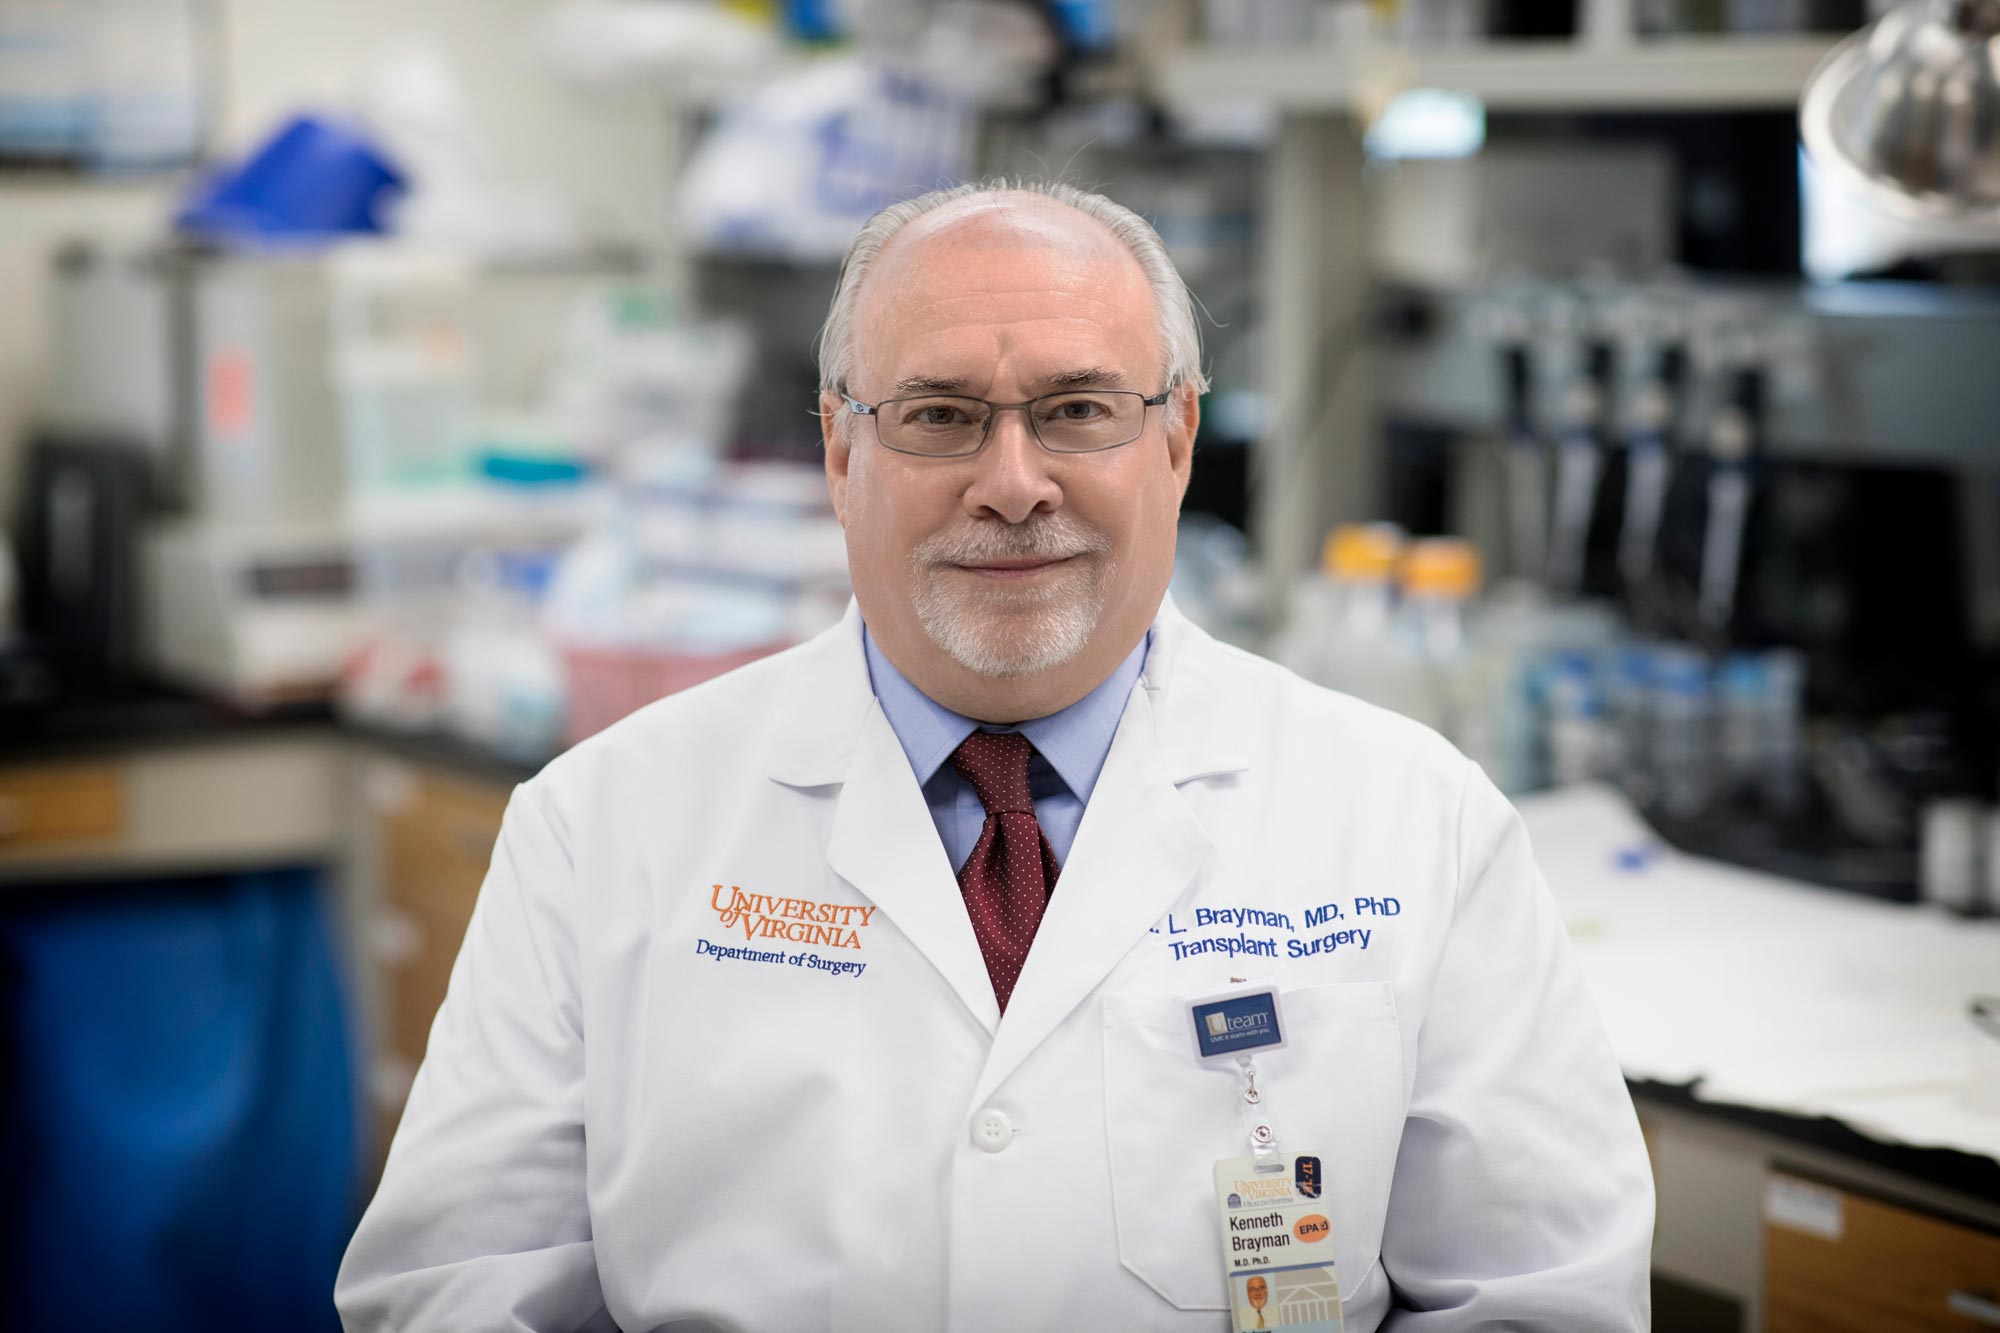 UVA transplant surgeon Dr. Kenneth Brayman is working with researchers at UVA and Vanderbilt University to understand the role of human immunoglobulin, or IgM, in the development of diabetes. (Photo by Dan Addison, University Communications)